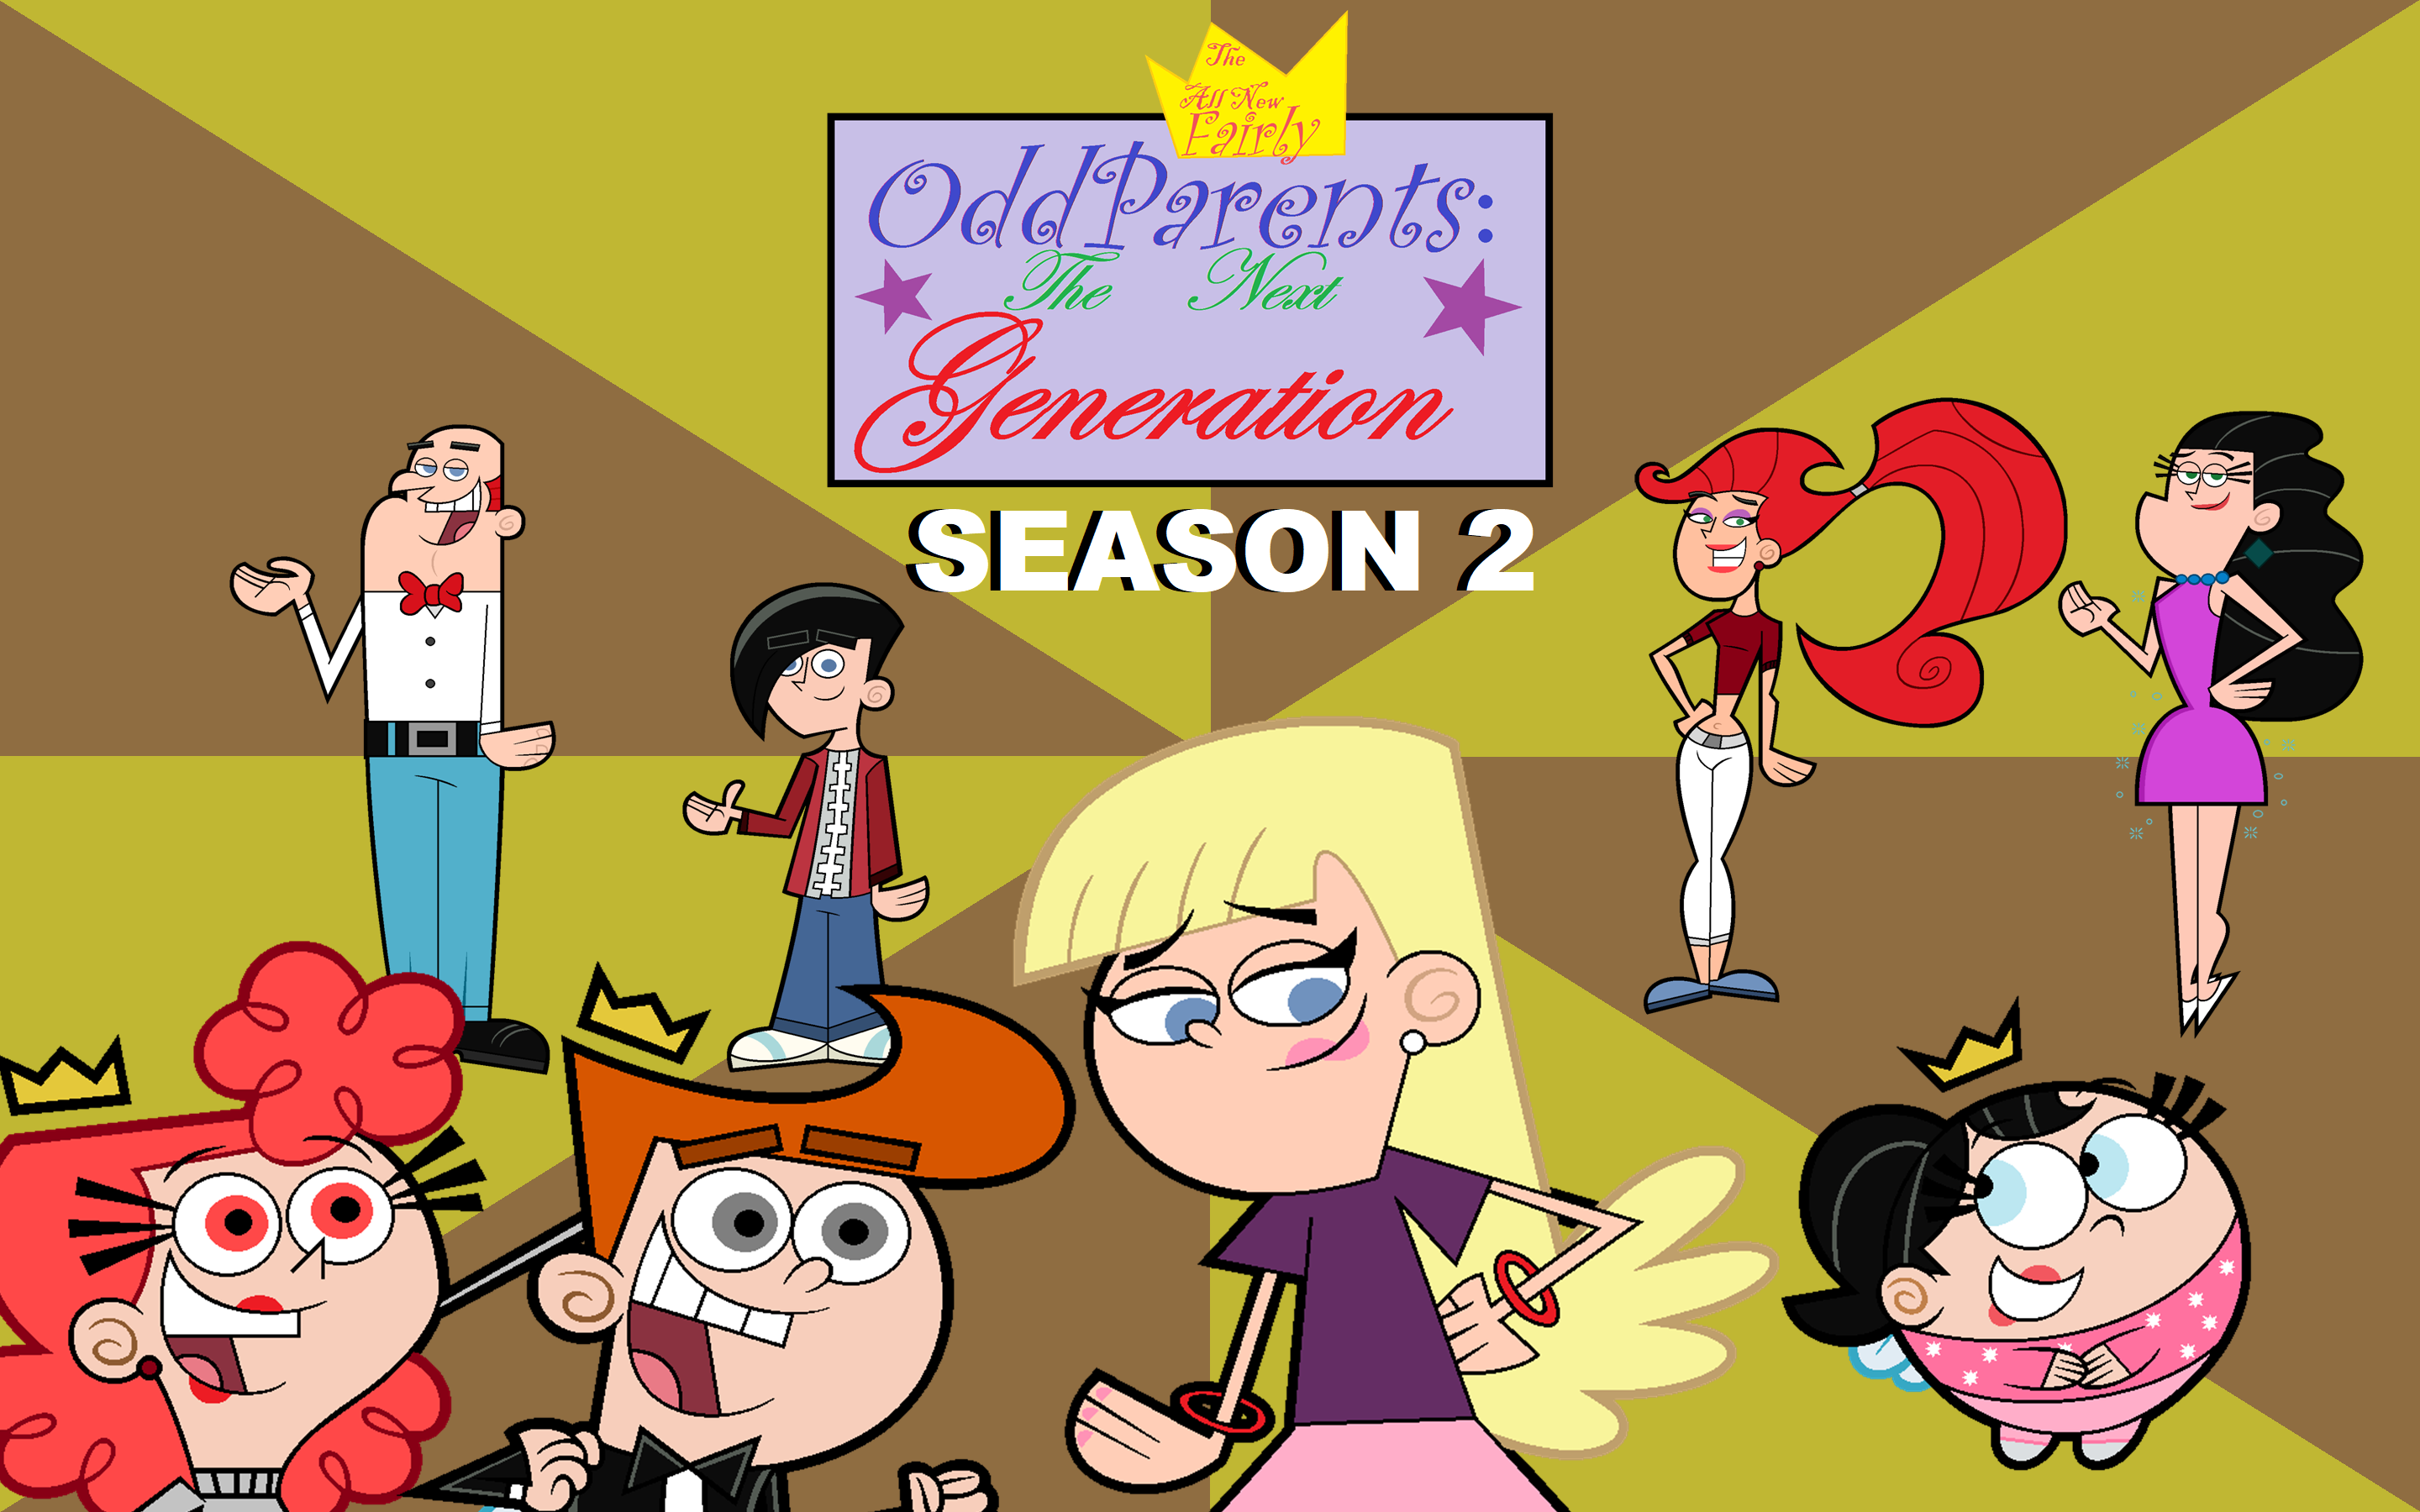 The Fairly OddParents: The Next Generation Season 2